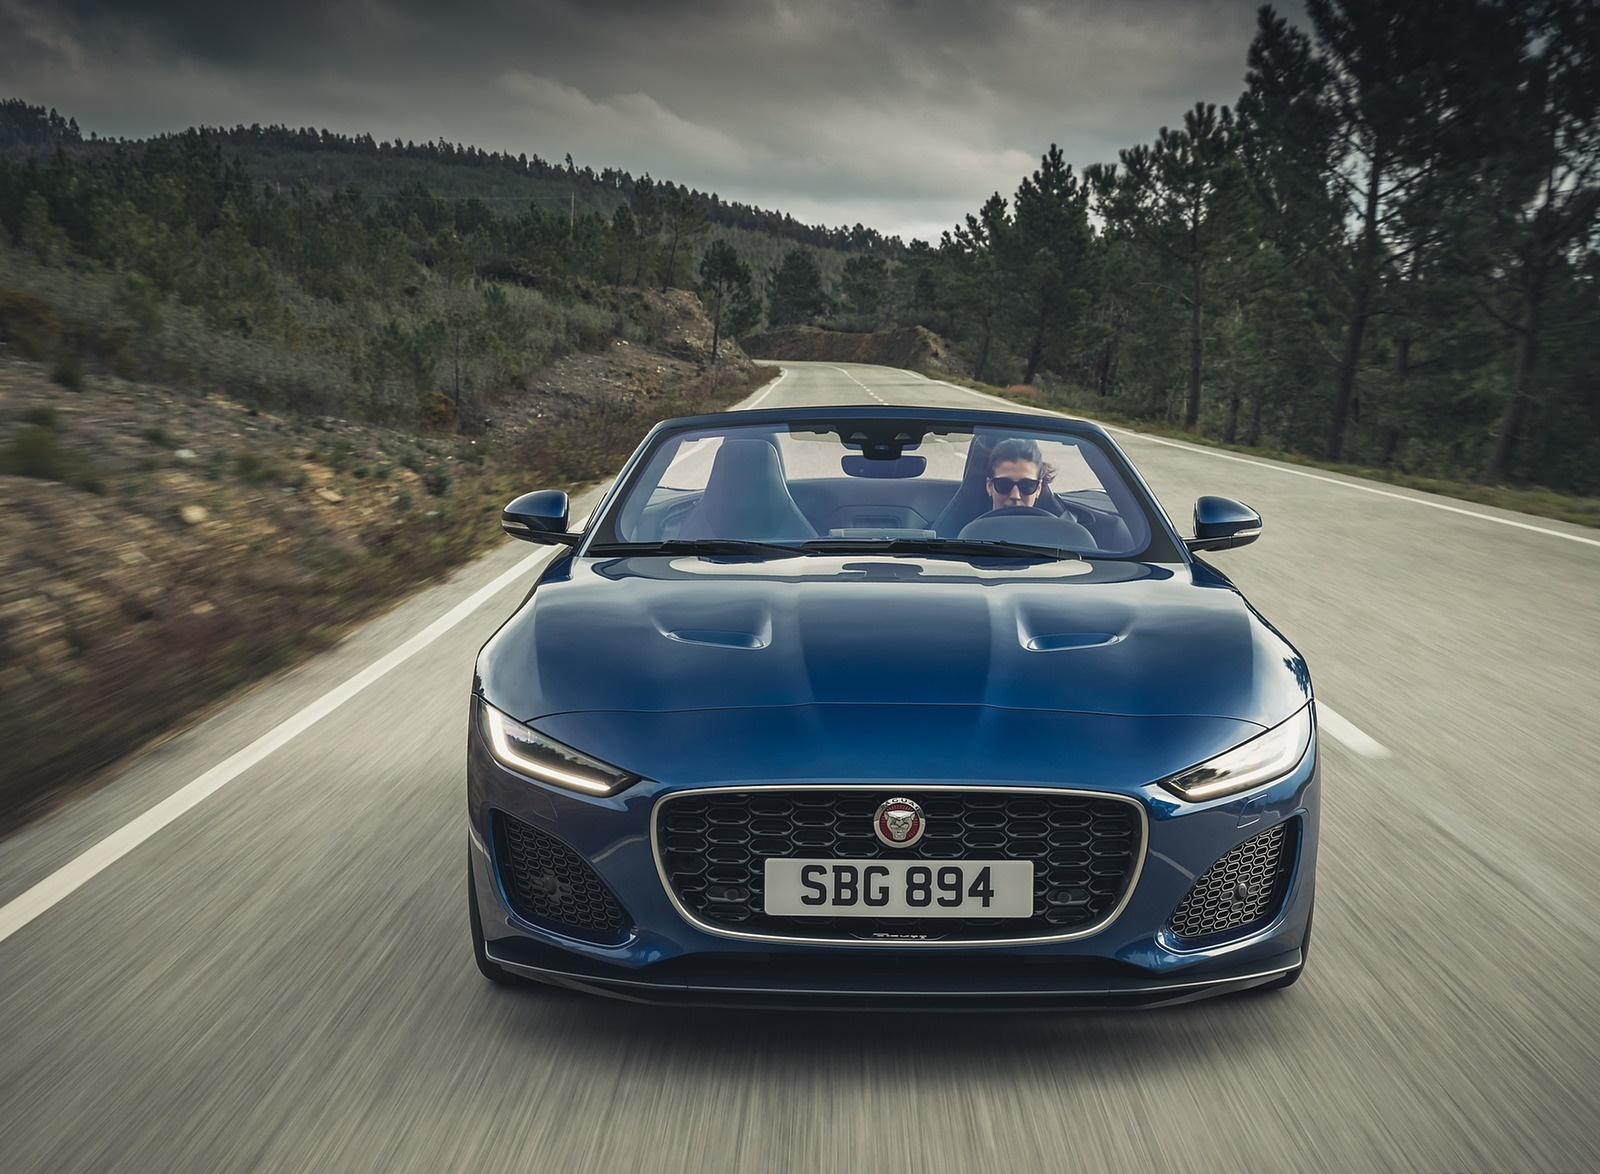 2021 Jaguar F-TYPE P300 Convertible RWD (Color: Bluefire) Front Wallpapers (7)